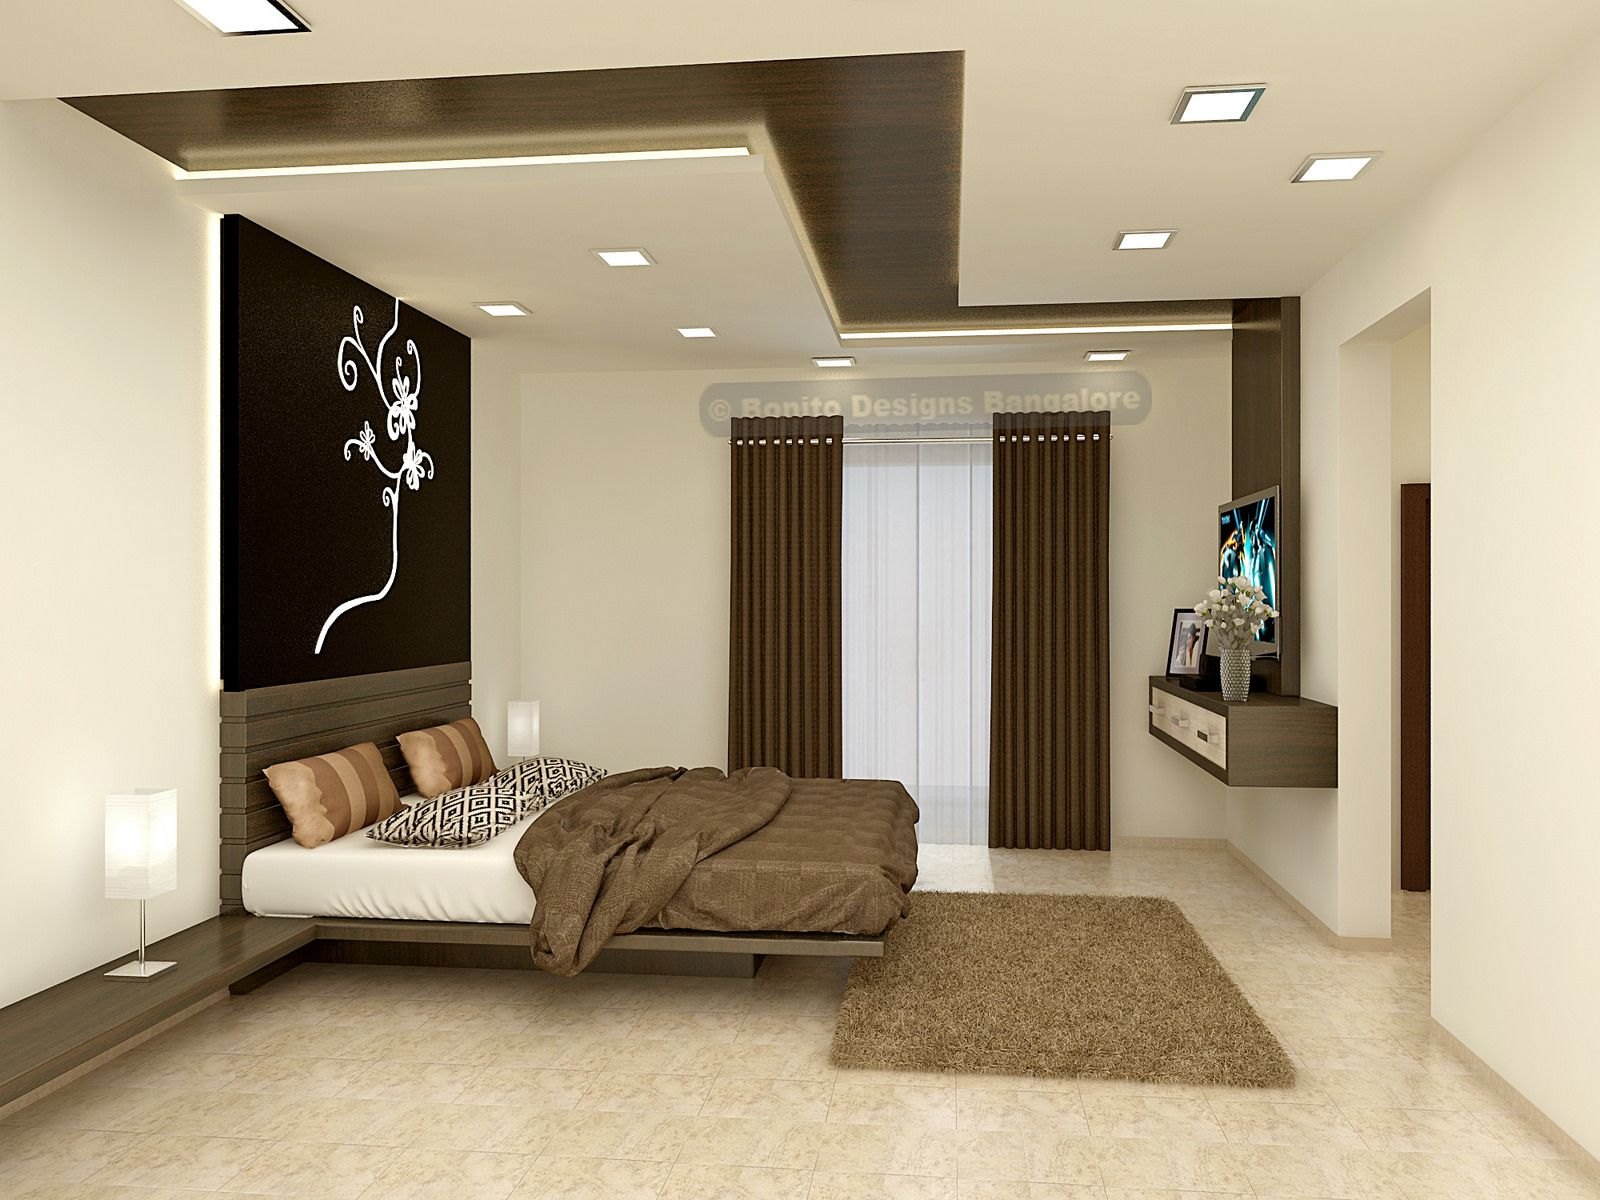 Superior Картинки по запросу Modern Ceiling Design For Bed Room 2015